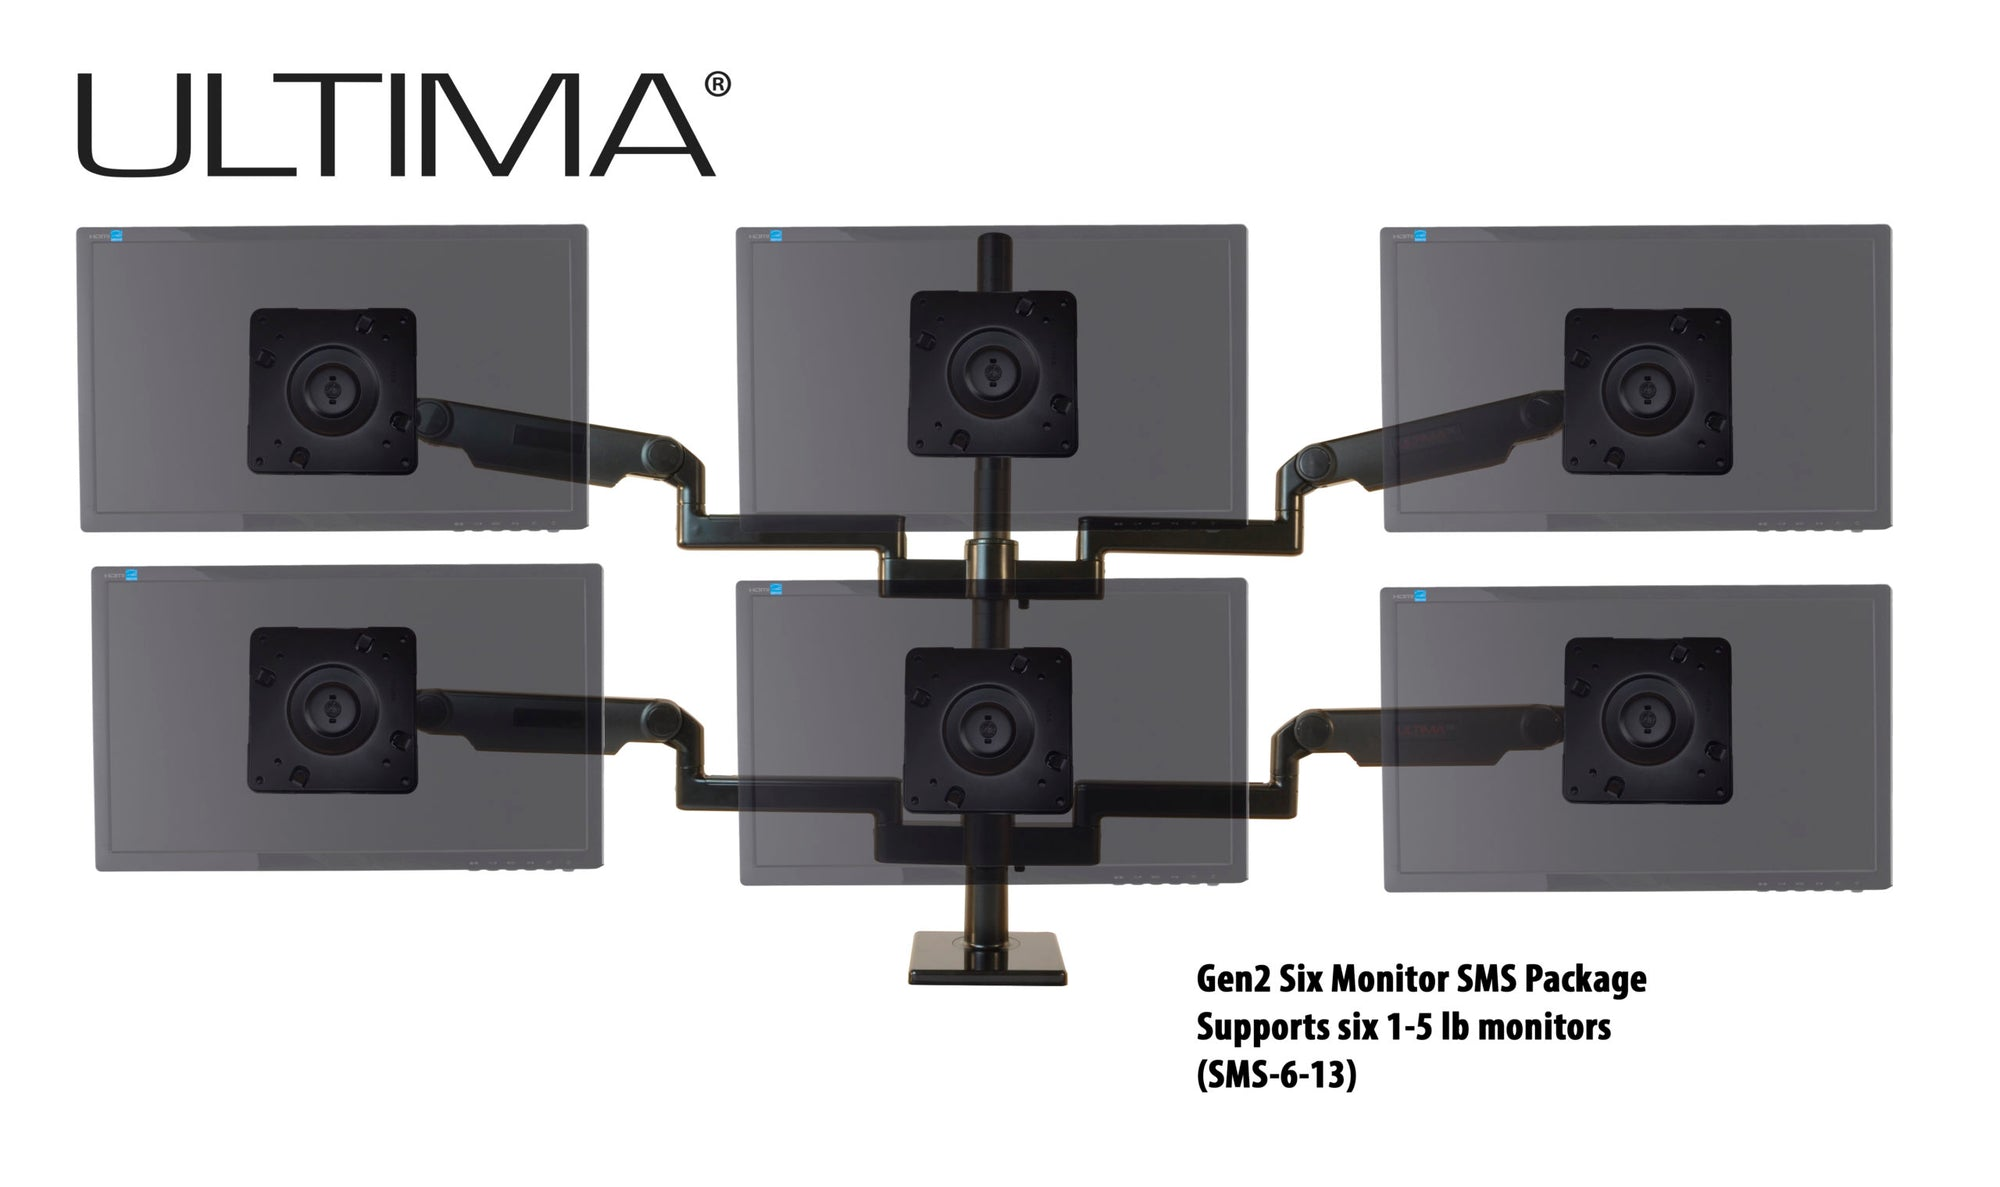 OC White SMS-6-13 & SMS-LD-6-13 Series ProBoom® Ultima® Gen2 Six Monitors SMS Package - 305broadcast